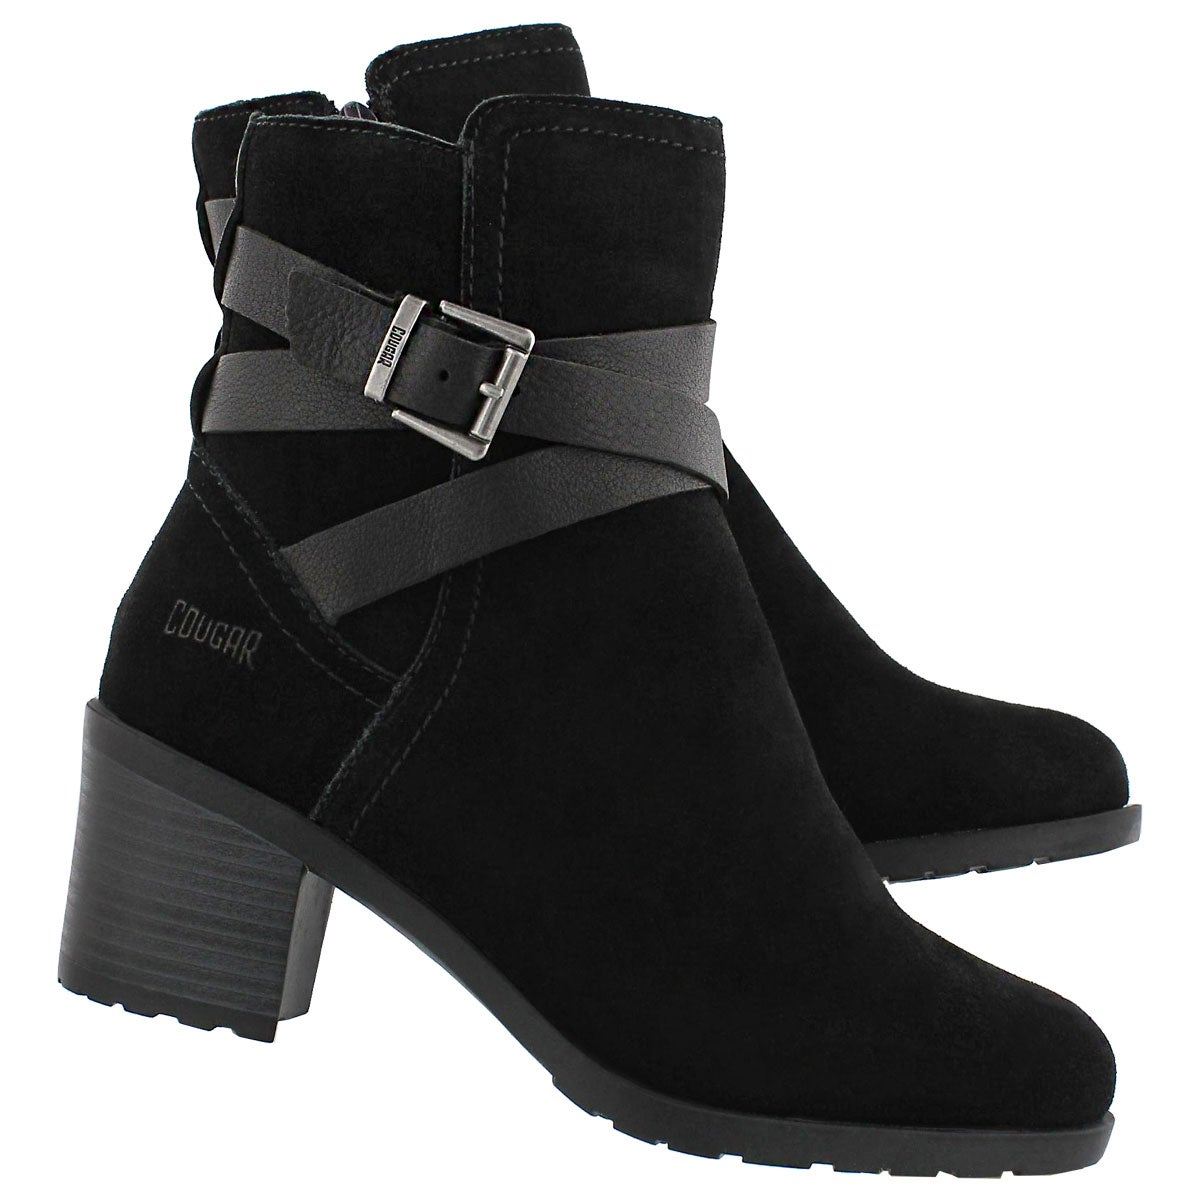 Lds Arvida blk wtpf ankle boot